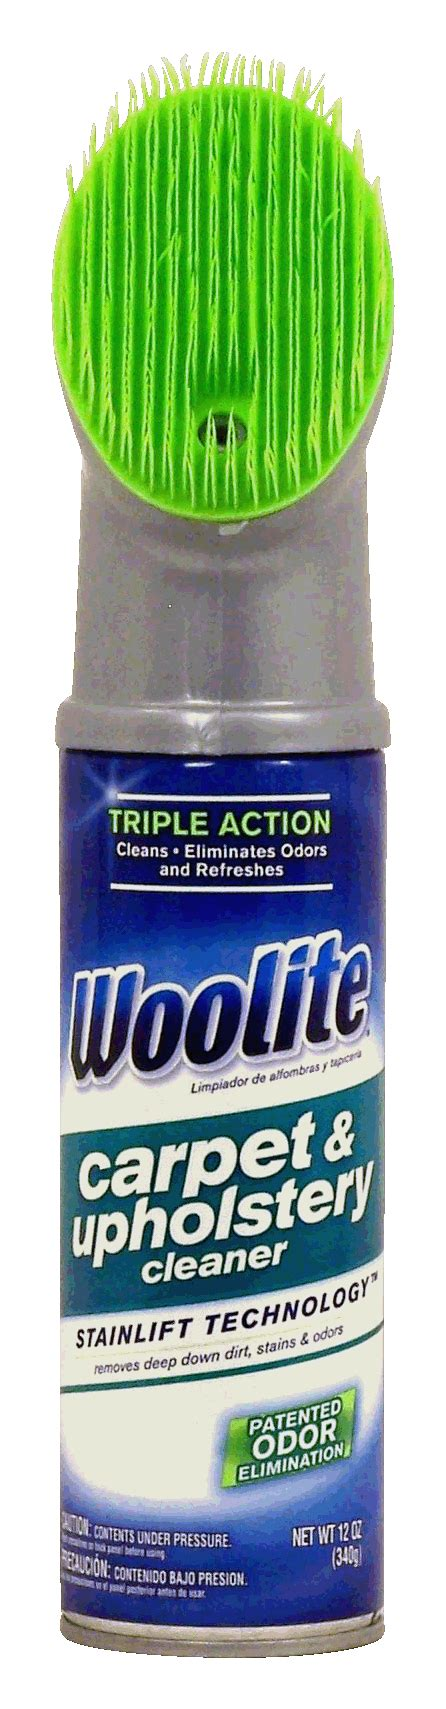 woolite upholstery cleaner woolite carpet and upholstery cleaner with brush carpet